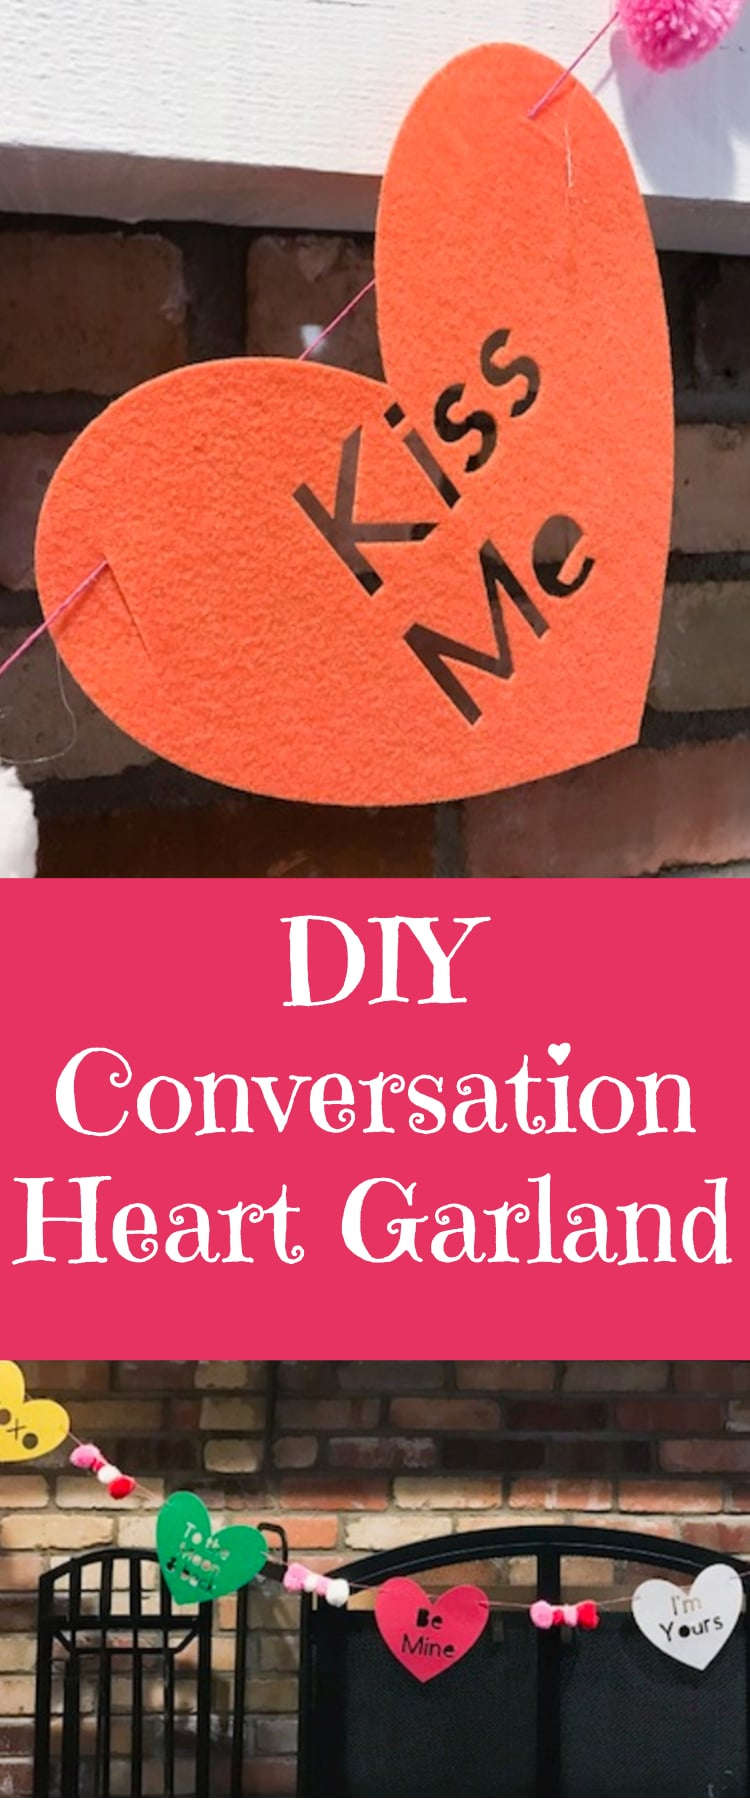 DIY Heart Garland / Cricut Garland / Cricut Valentine's Day / DIY Valentine's Day / #cricut #cricutmaker #cricutvalentines #DIY via @clarkscondensed